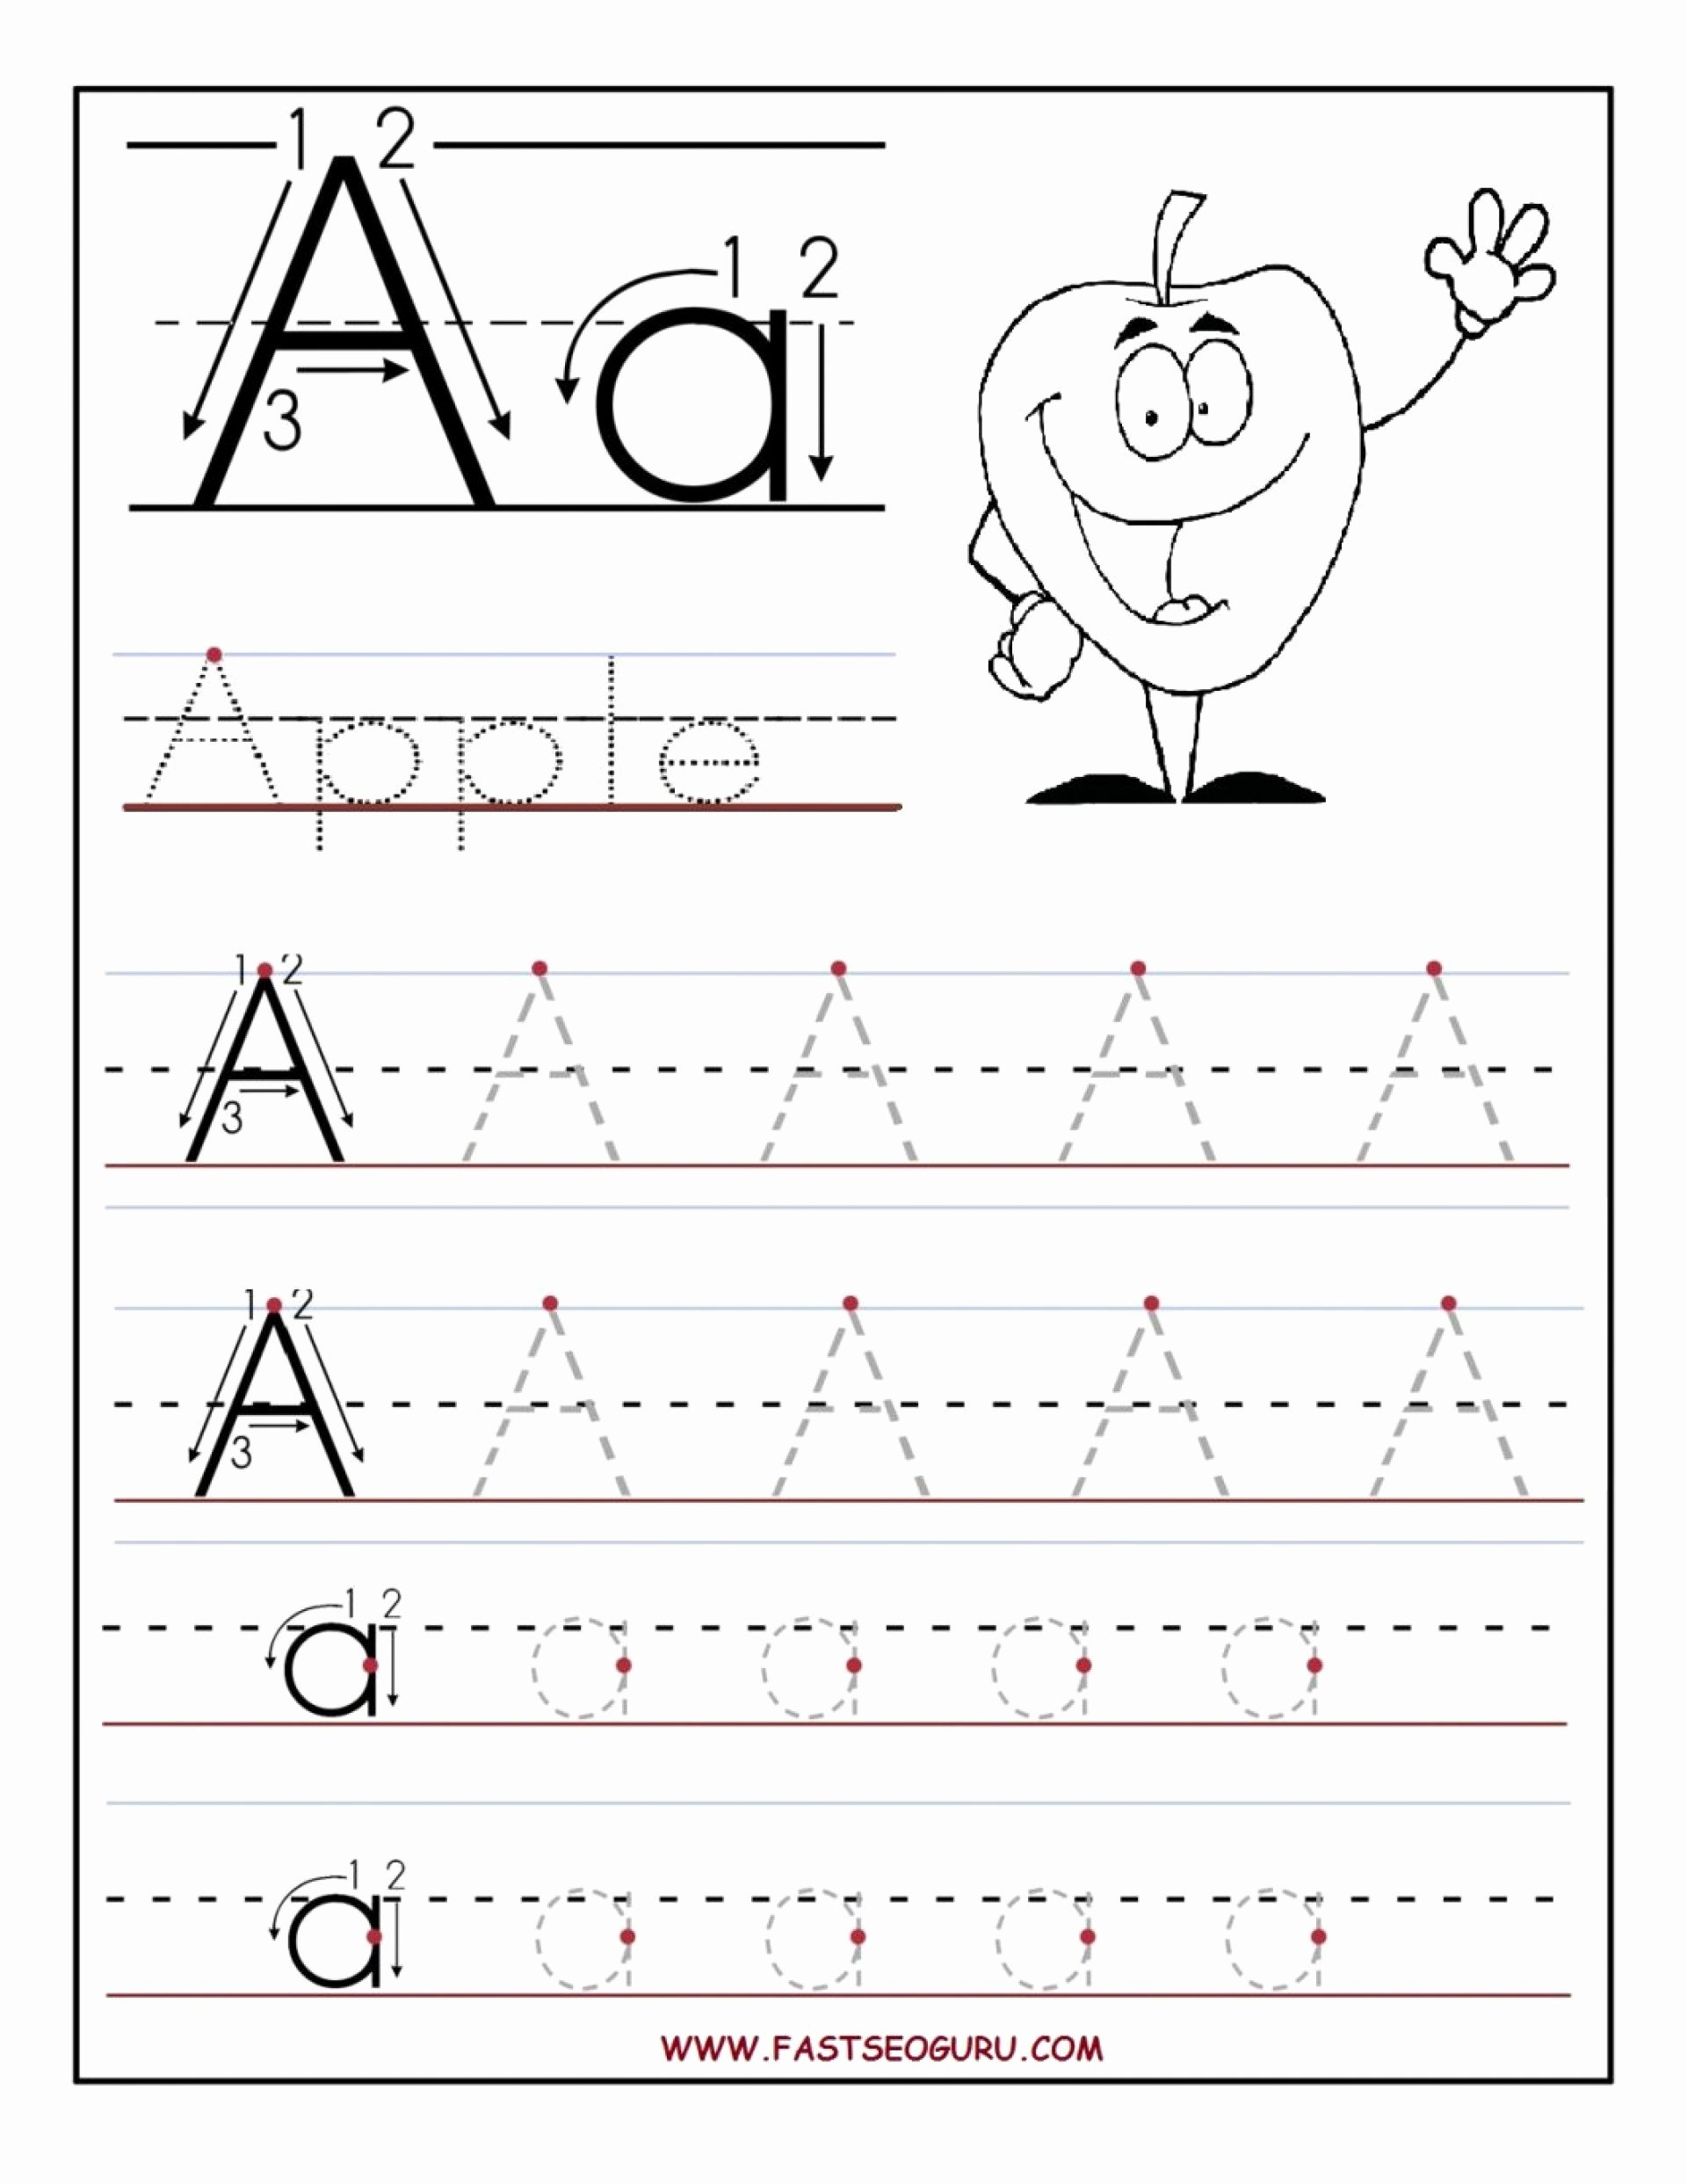 Free Printable Letter S Worksheets for Preschoolers Best Of Coloring Book Preschool Free Printable Worksheets Tracing